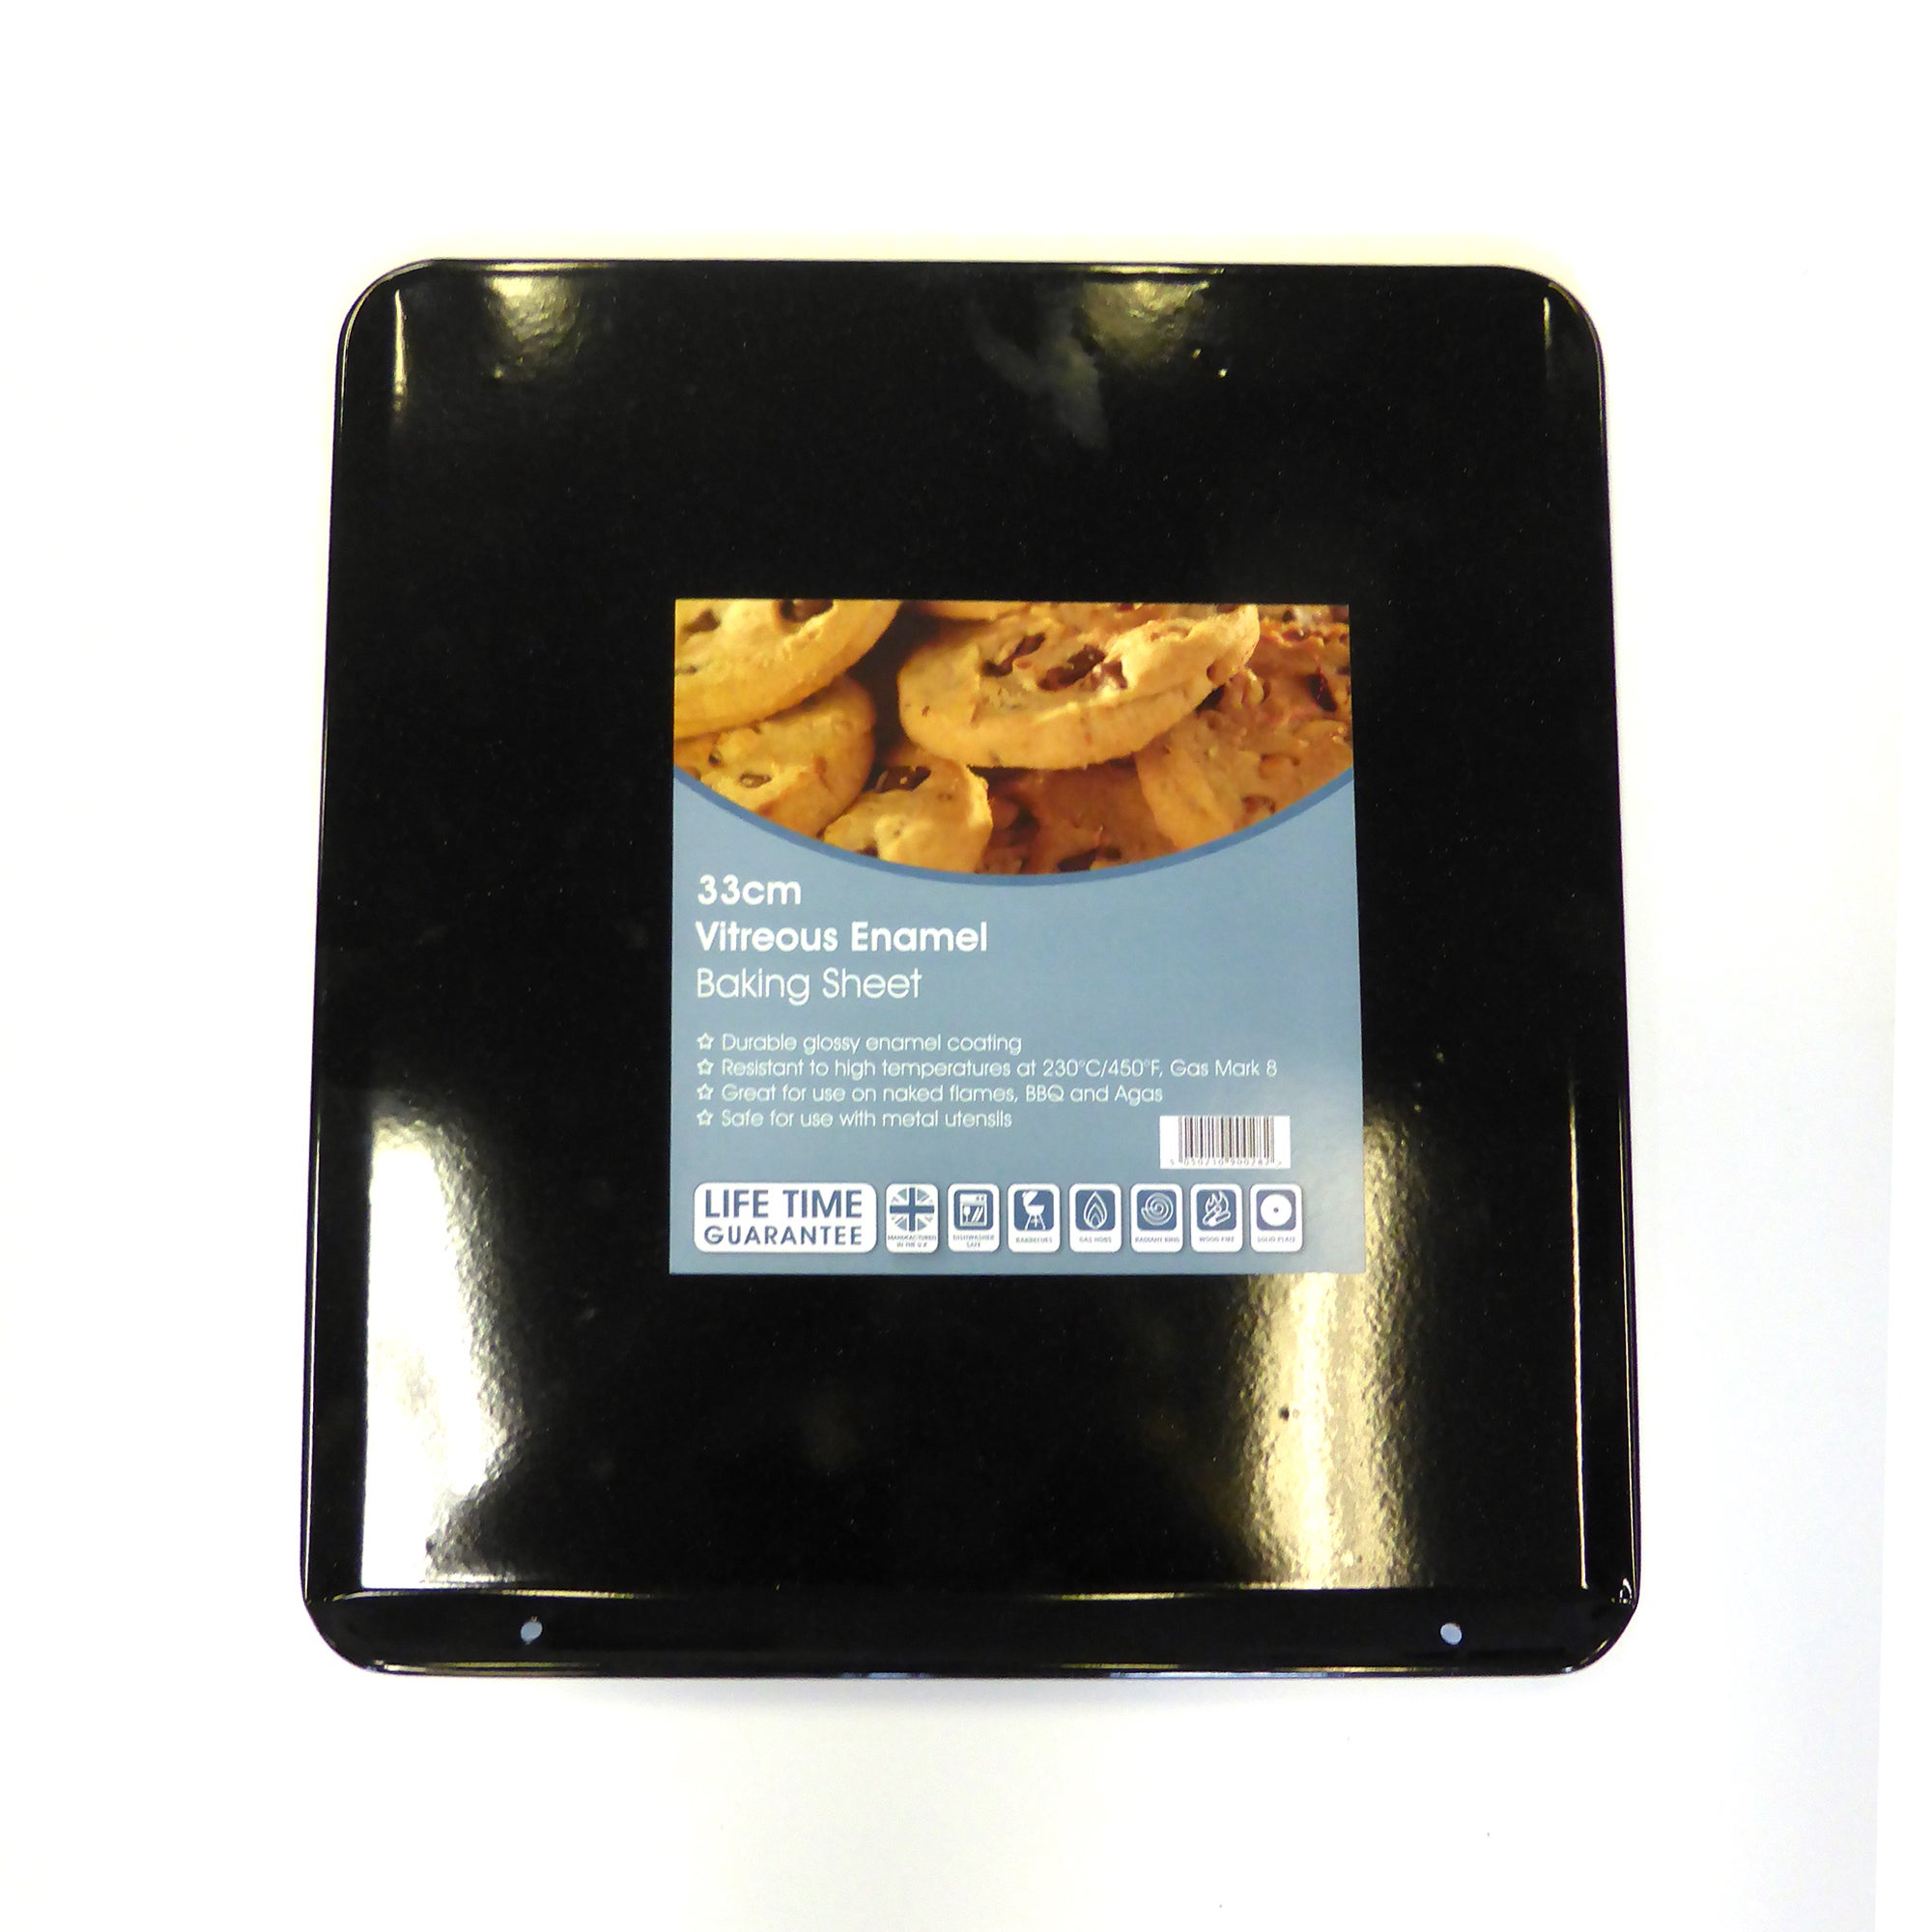 Vitreous Enamel Baking Sheet